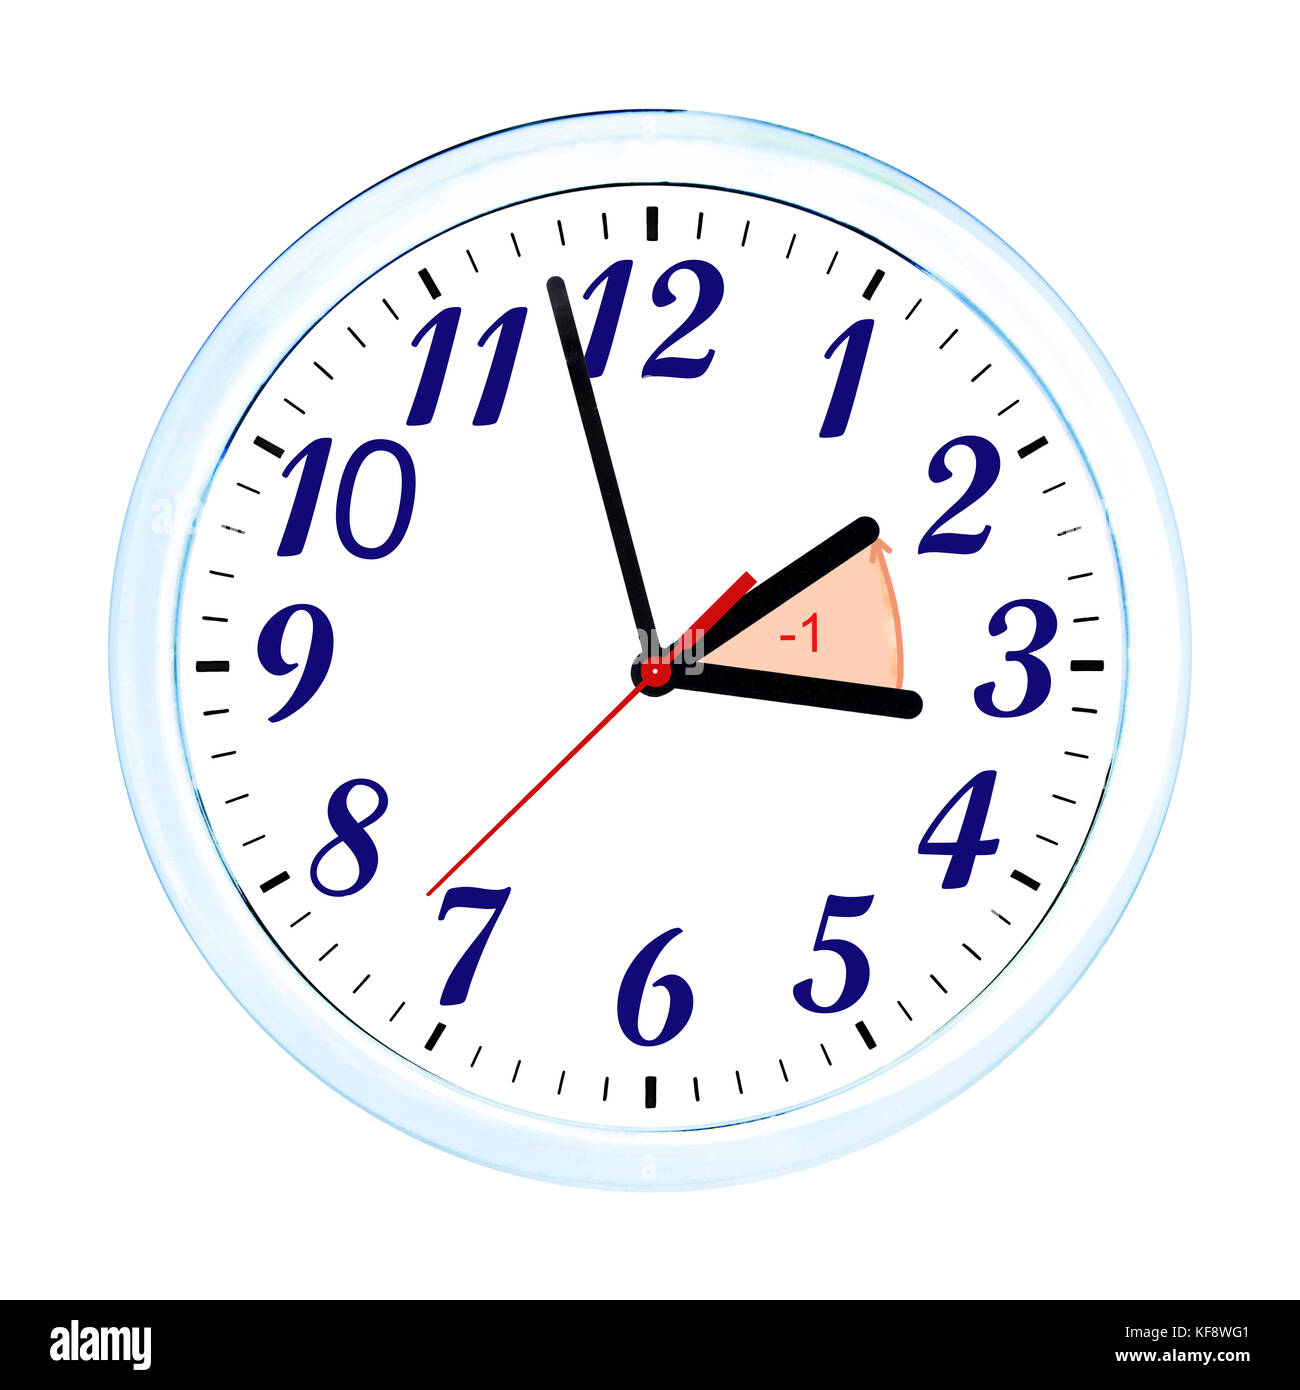 Daylight Saving Time Usa Time Zone 2017 Wall Clock Going To Winter